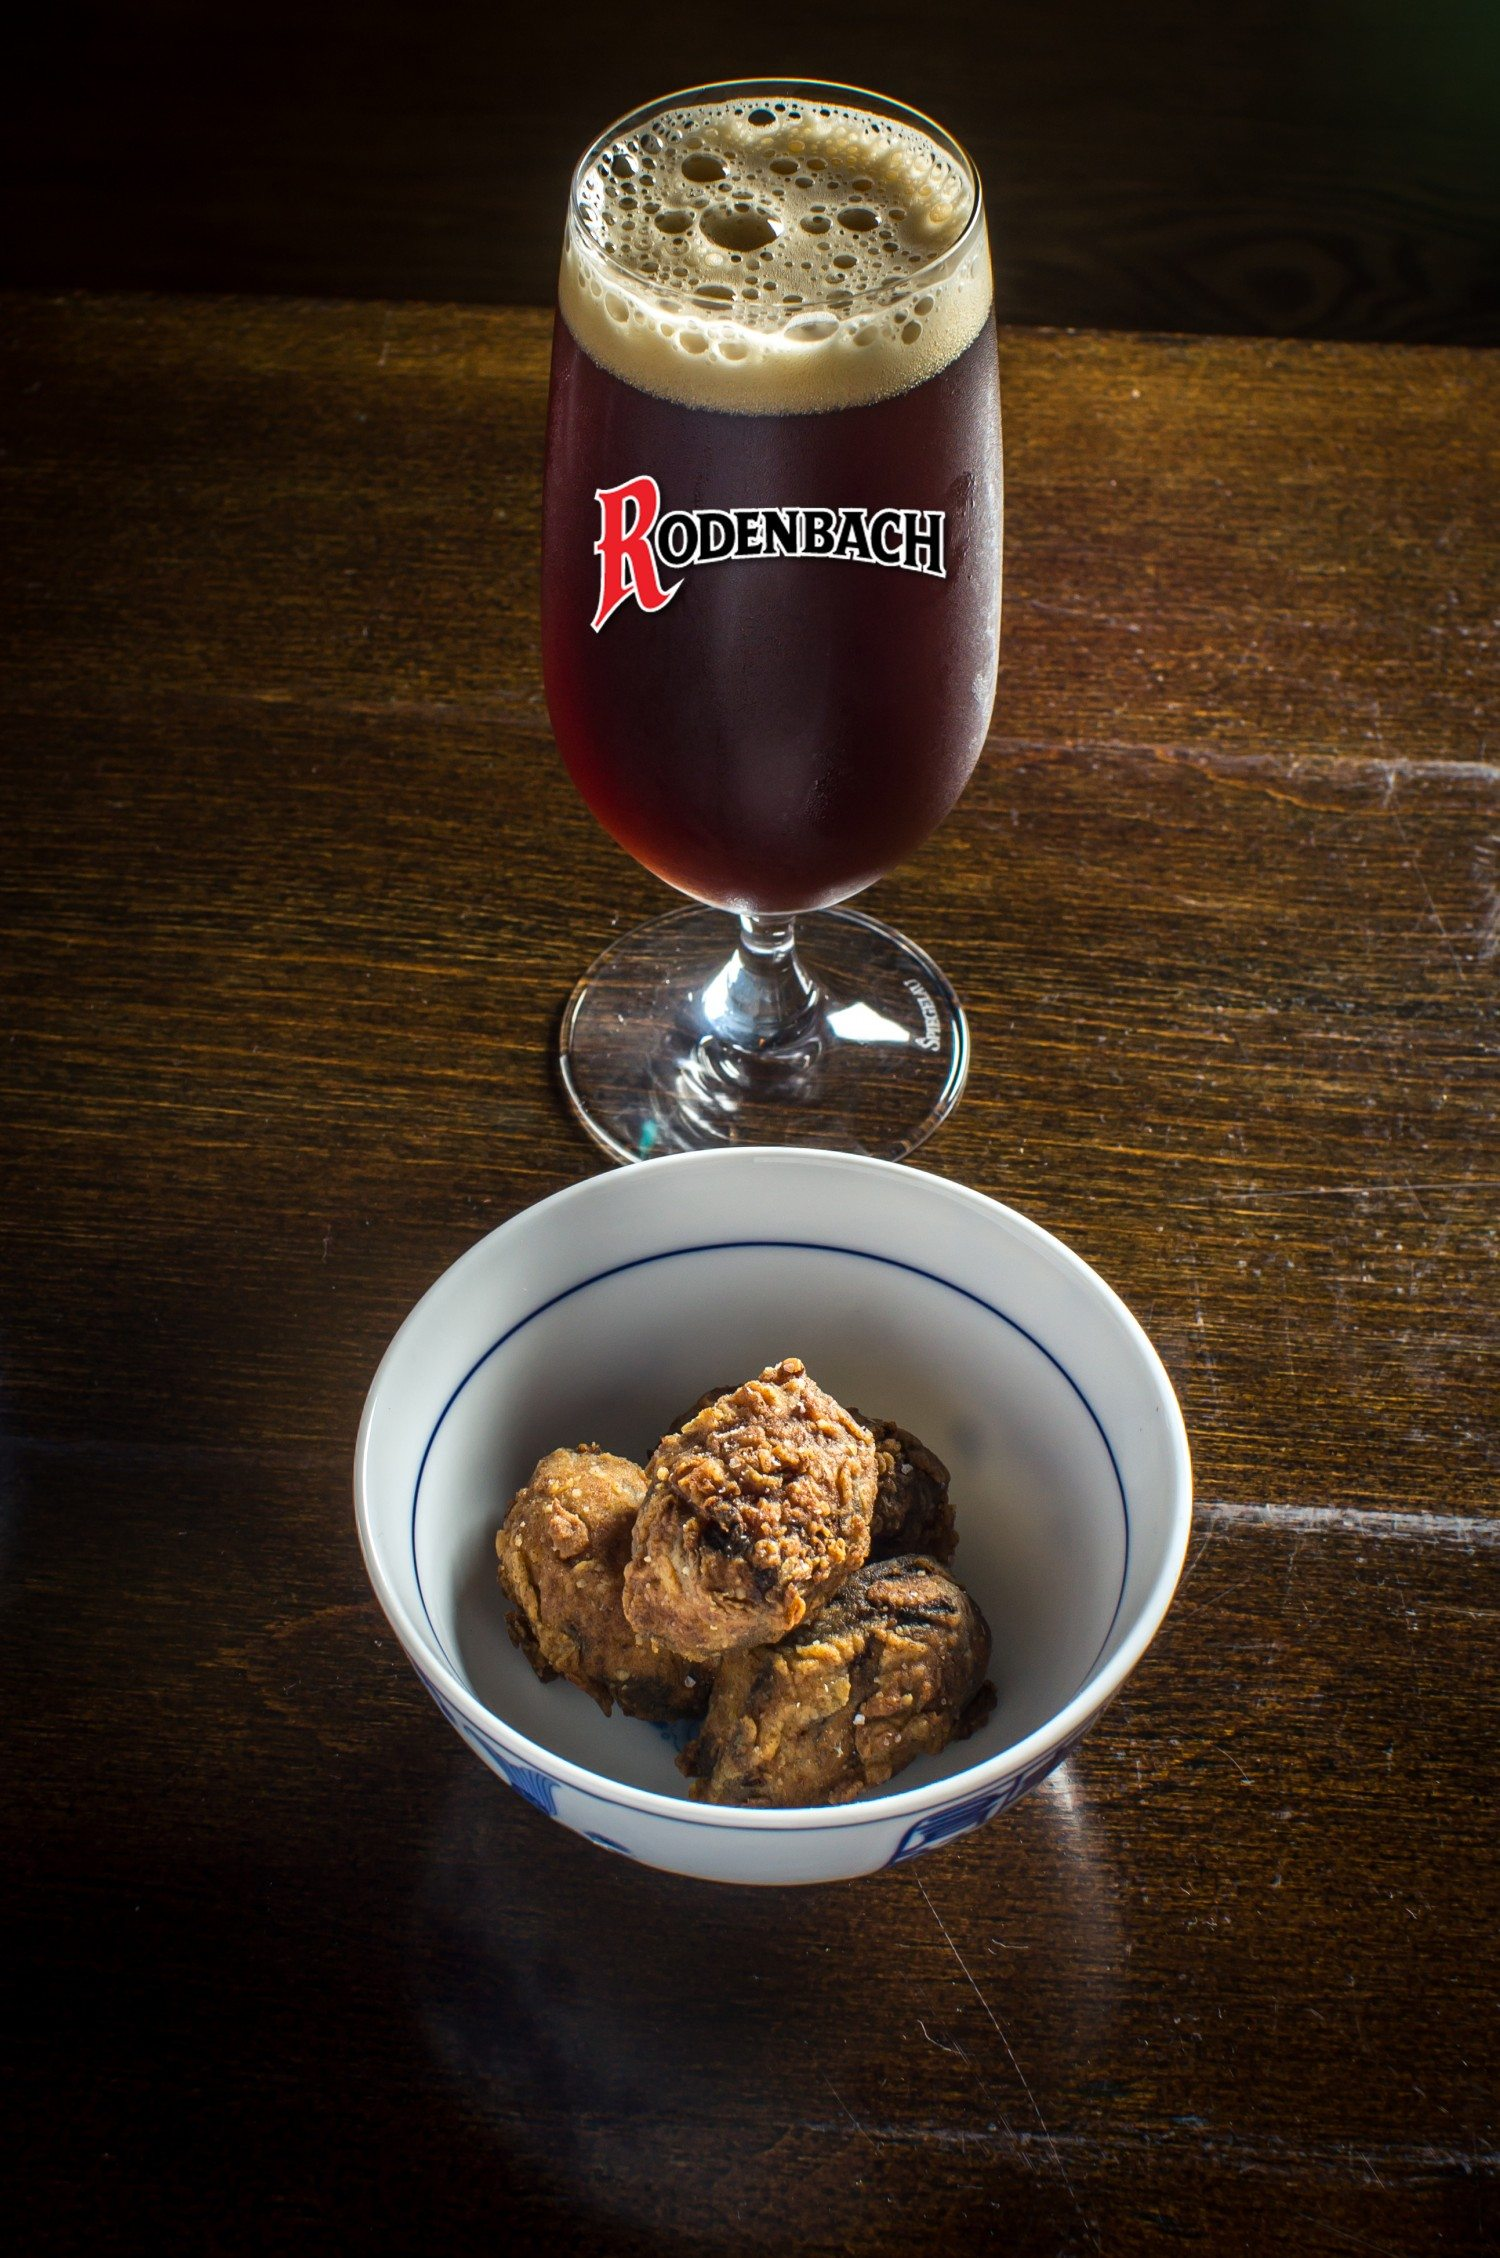 Rodenbach & FUNG TU together